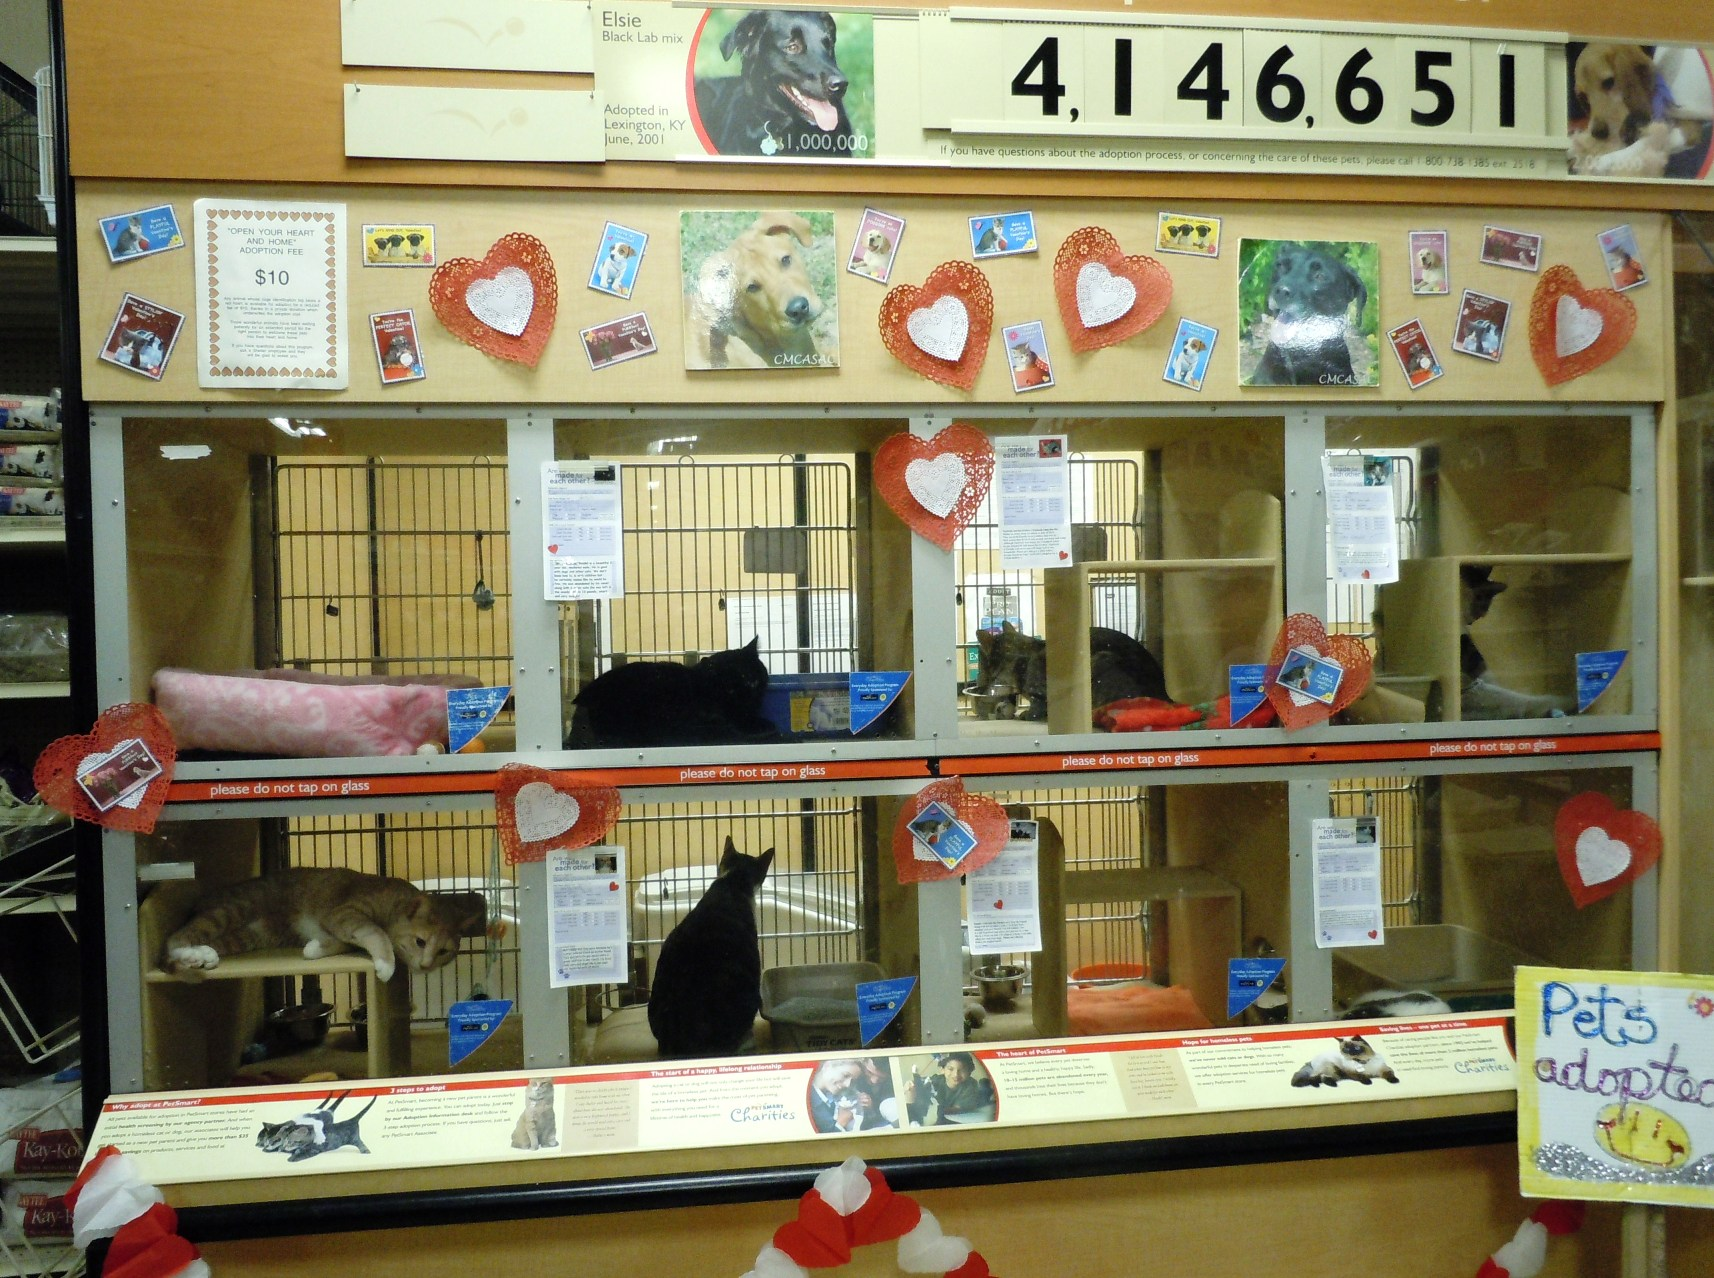 Cats in cages on display for adoption at PetSmart